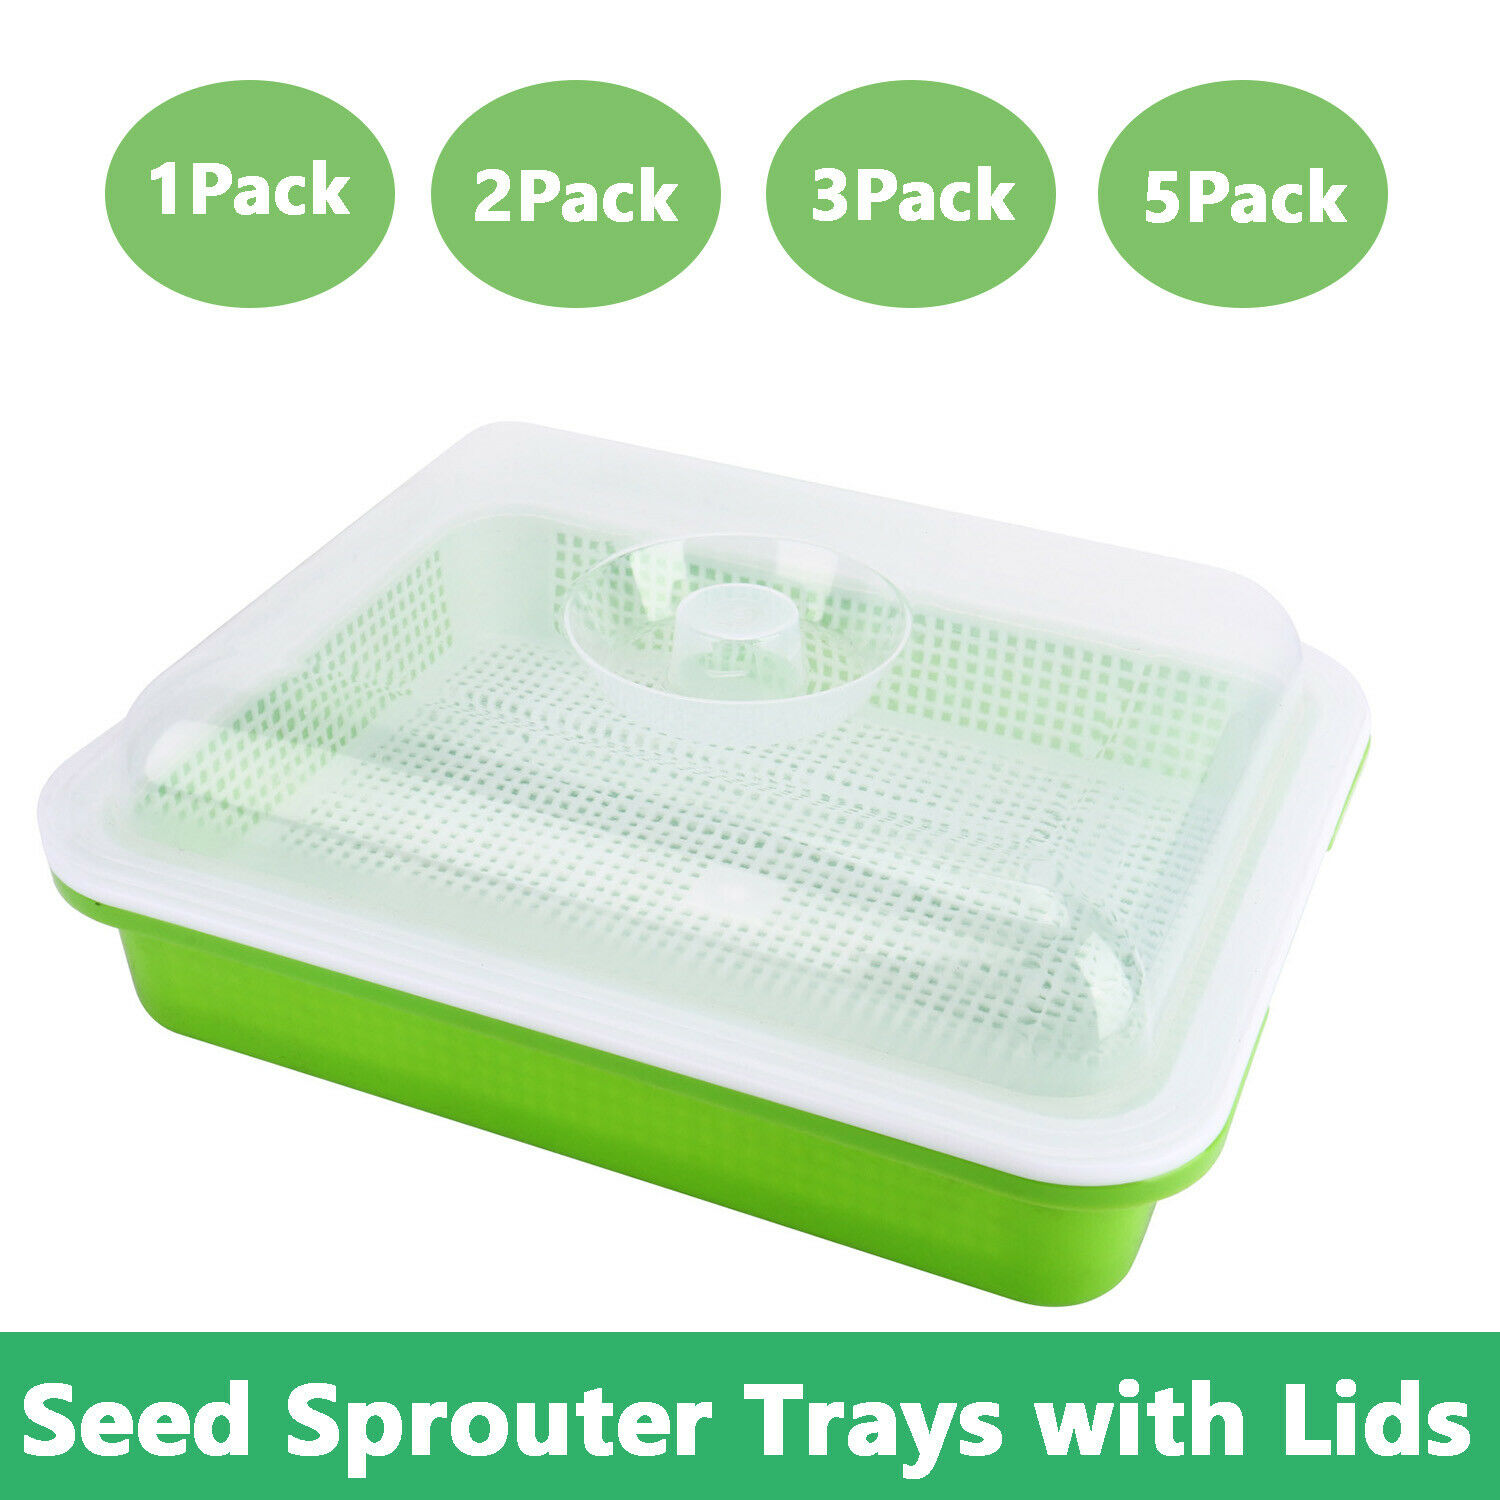 2 Pack Seed Sprouter Tray Bpa Free Pp Soil Free Big Capacity Healthy Wheatgrass Grower Sprouting Container Kit With Lid 2 Green Germination Trays Kolenik Patio Lawn Garden